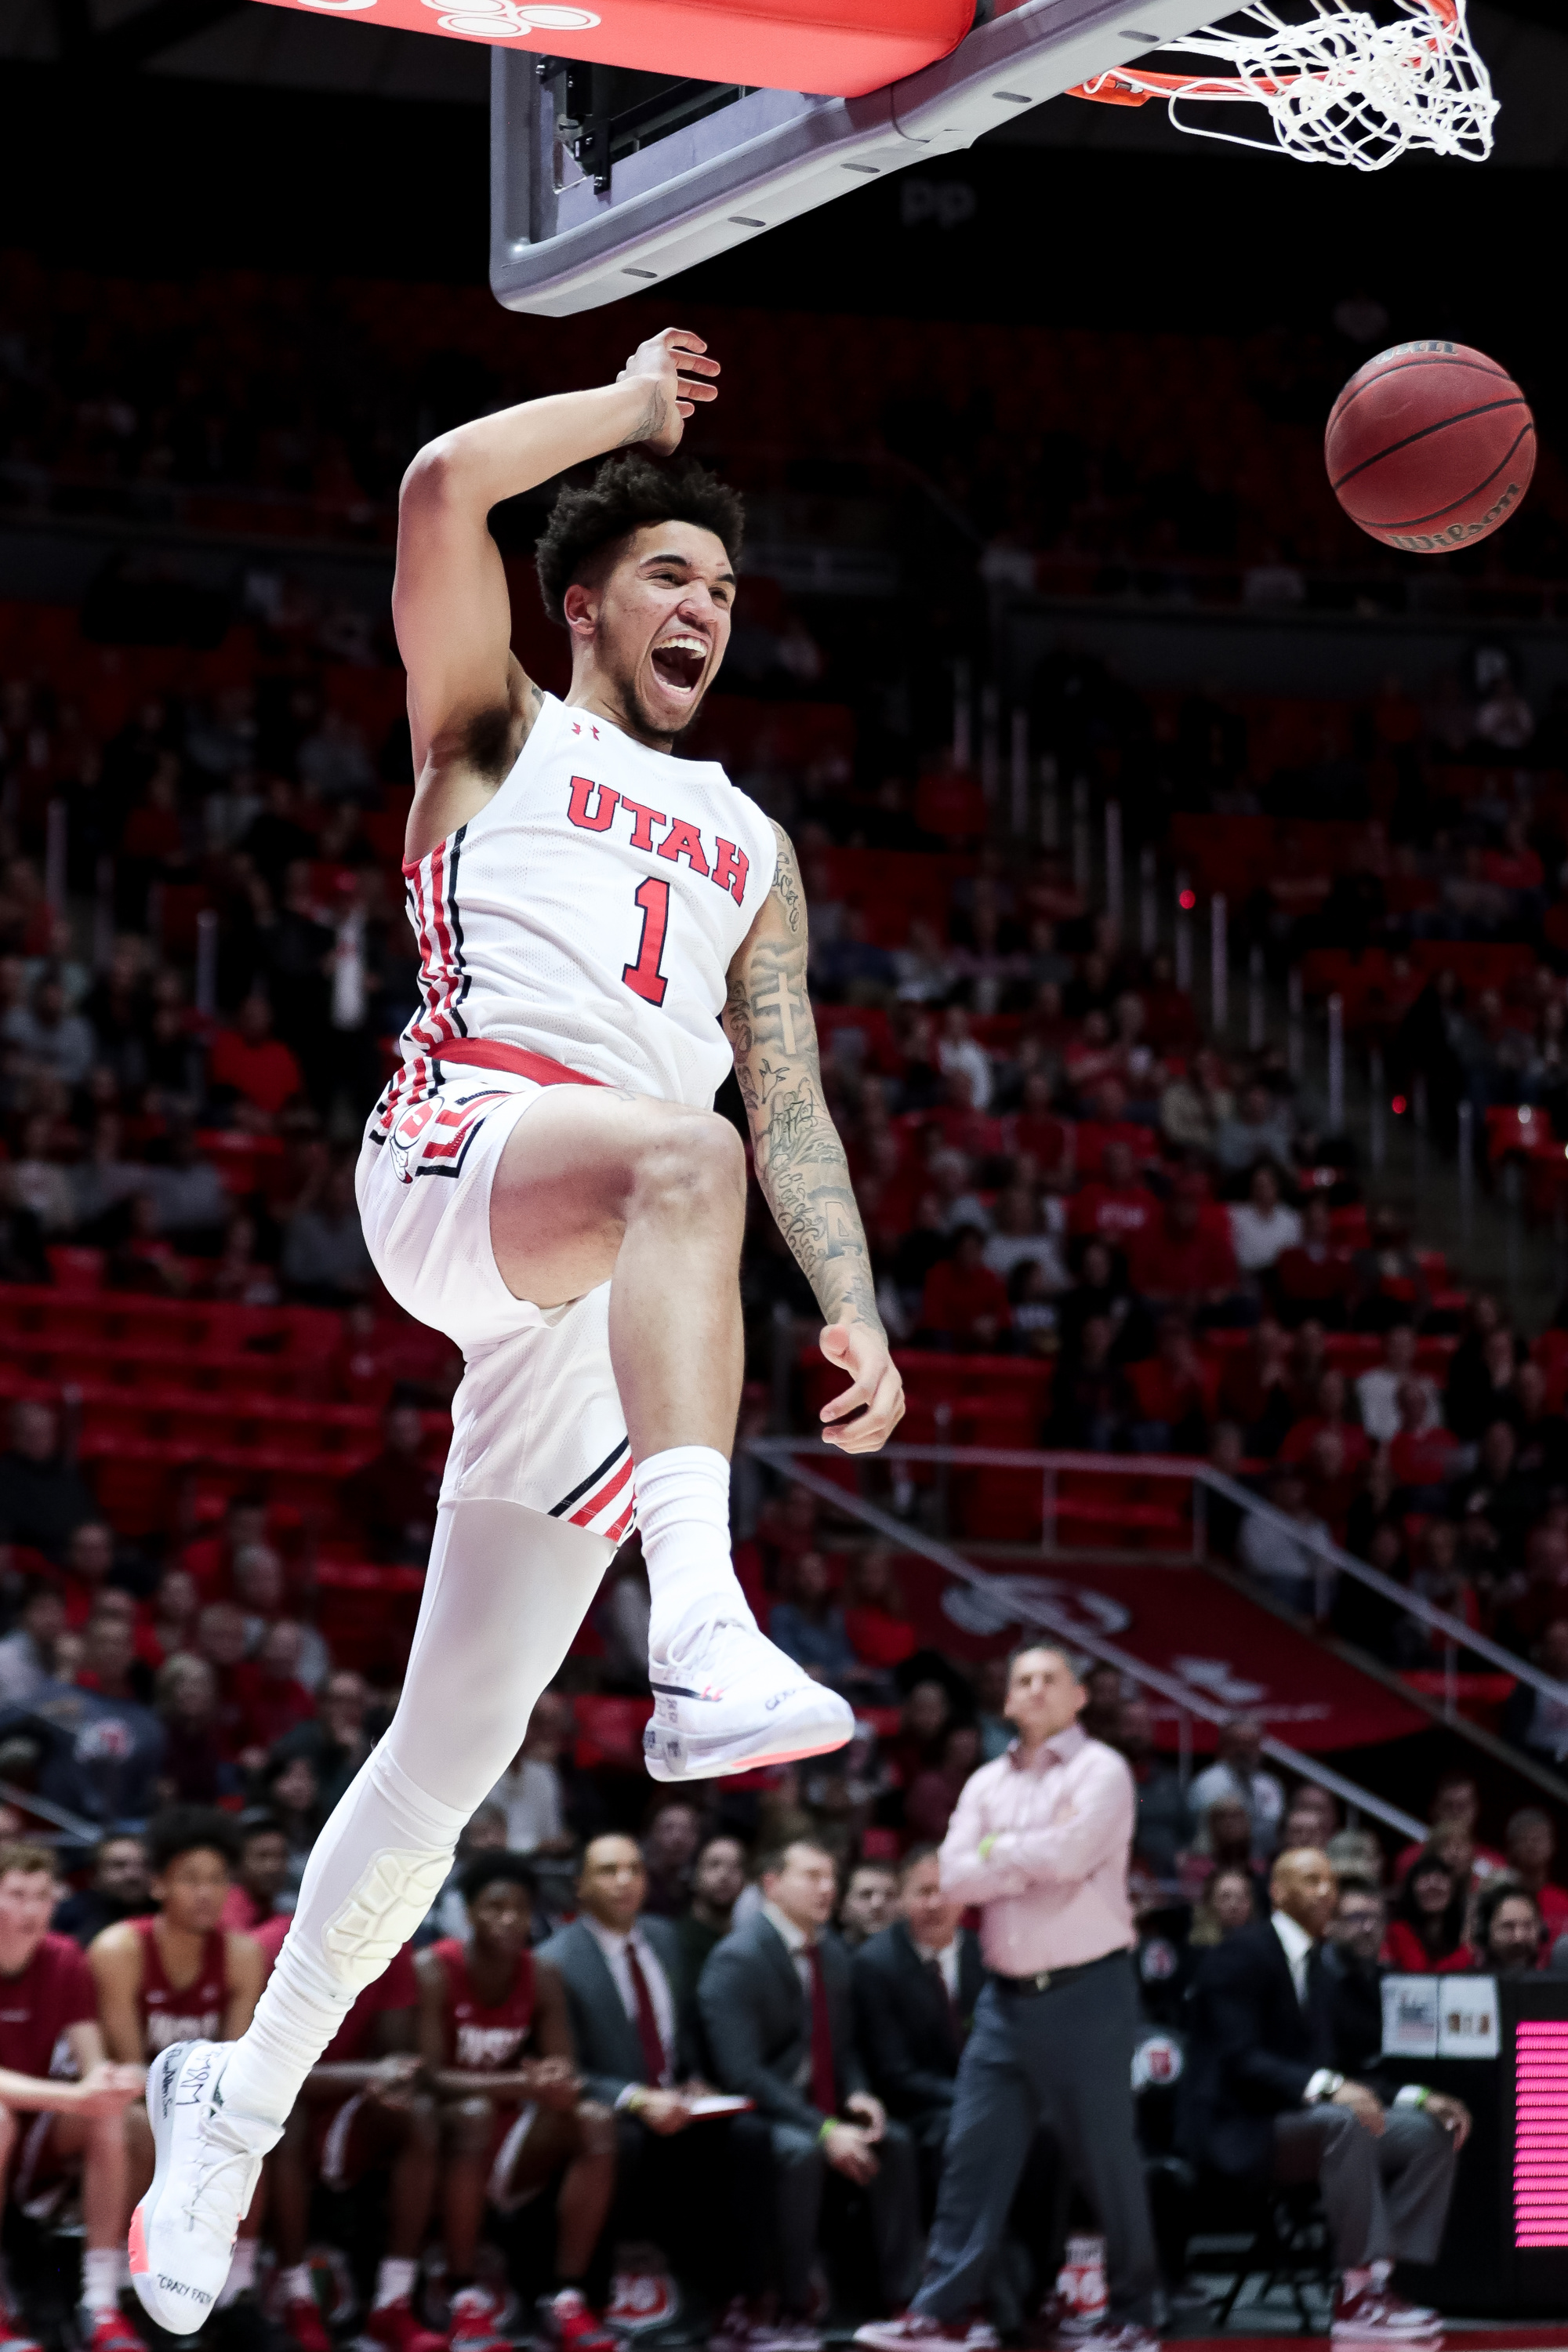 Utah Utes forward Timmy Allen (1) dunks on a breakaway during the game against the Washington State Cougars at the Huntsman Center in Salt Lake City on Saturday, Jan. 25, 2020.